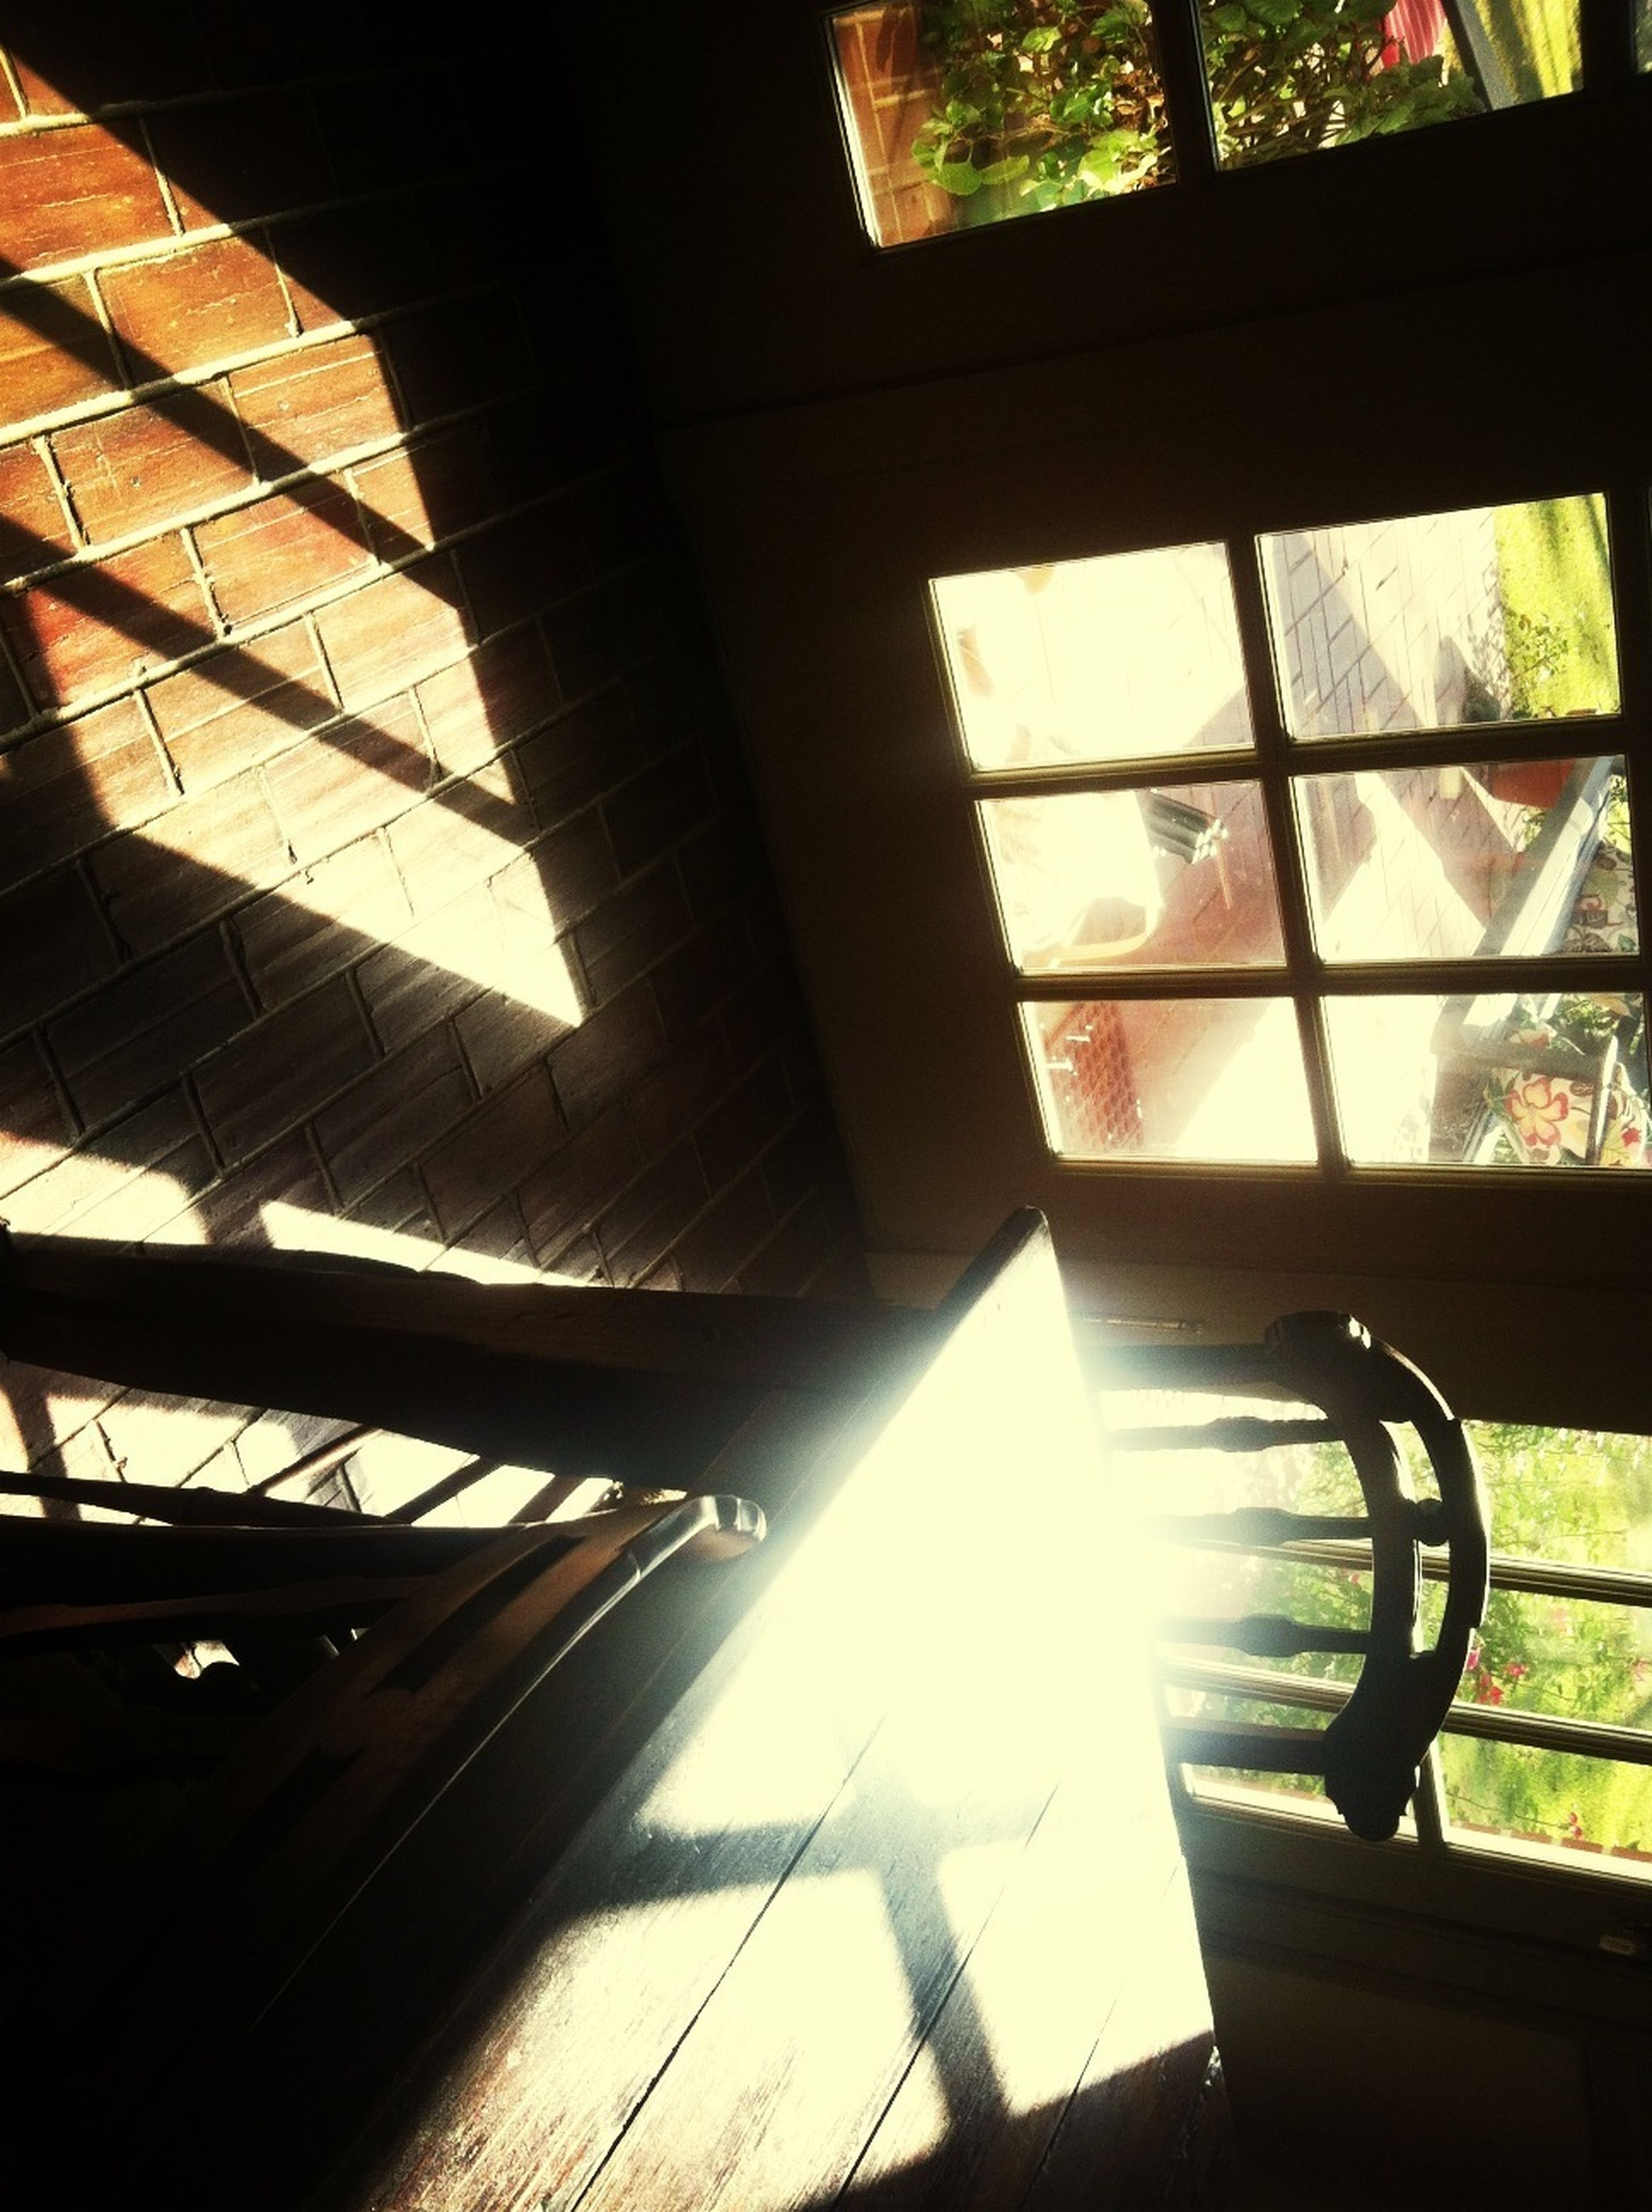 sunlight, built structure, architecture, indoors, sunbeam, sun, low angle view, shadow, lens flare, window, railing, building exterior, glass - material, no people, day, sunny, building, silhouette, tree, shiny